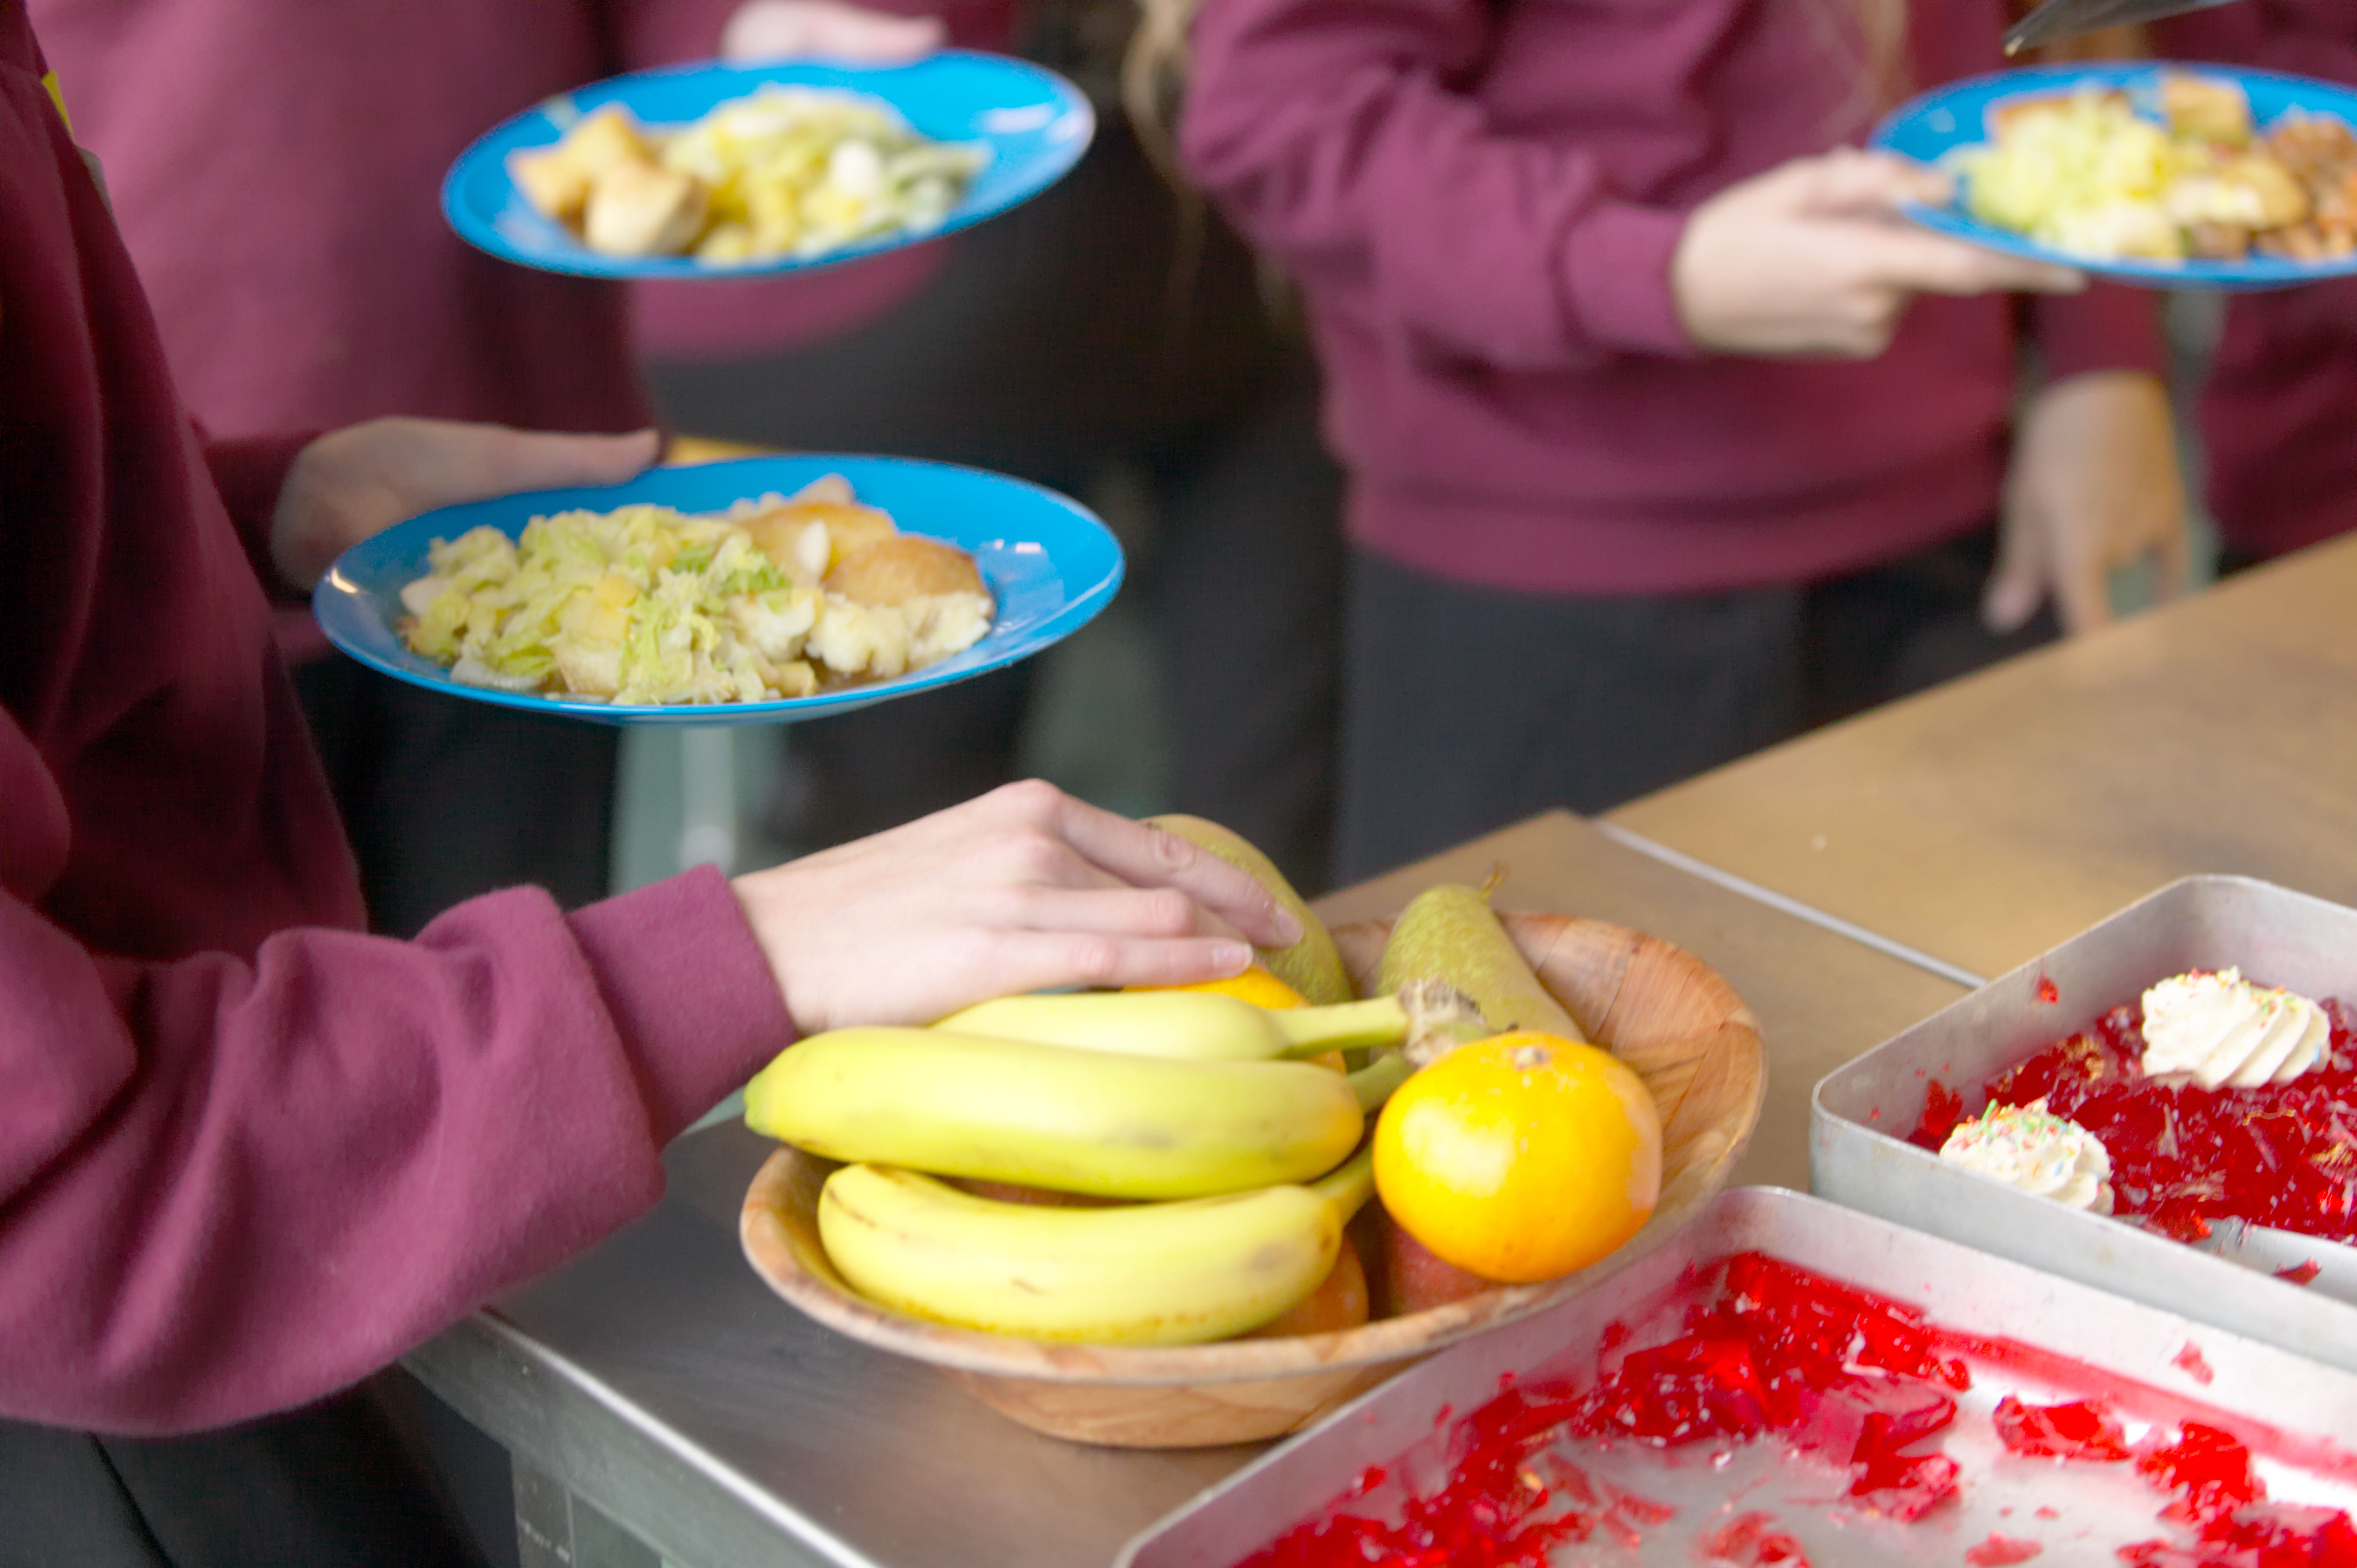 Struggling families are getting food parcels instead of free school meals for their kids during the national lockdown